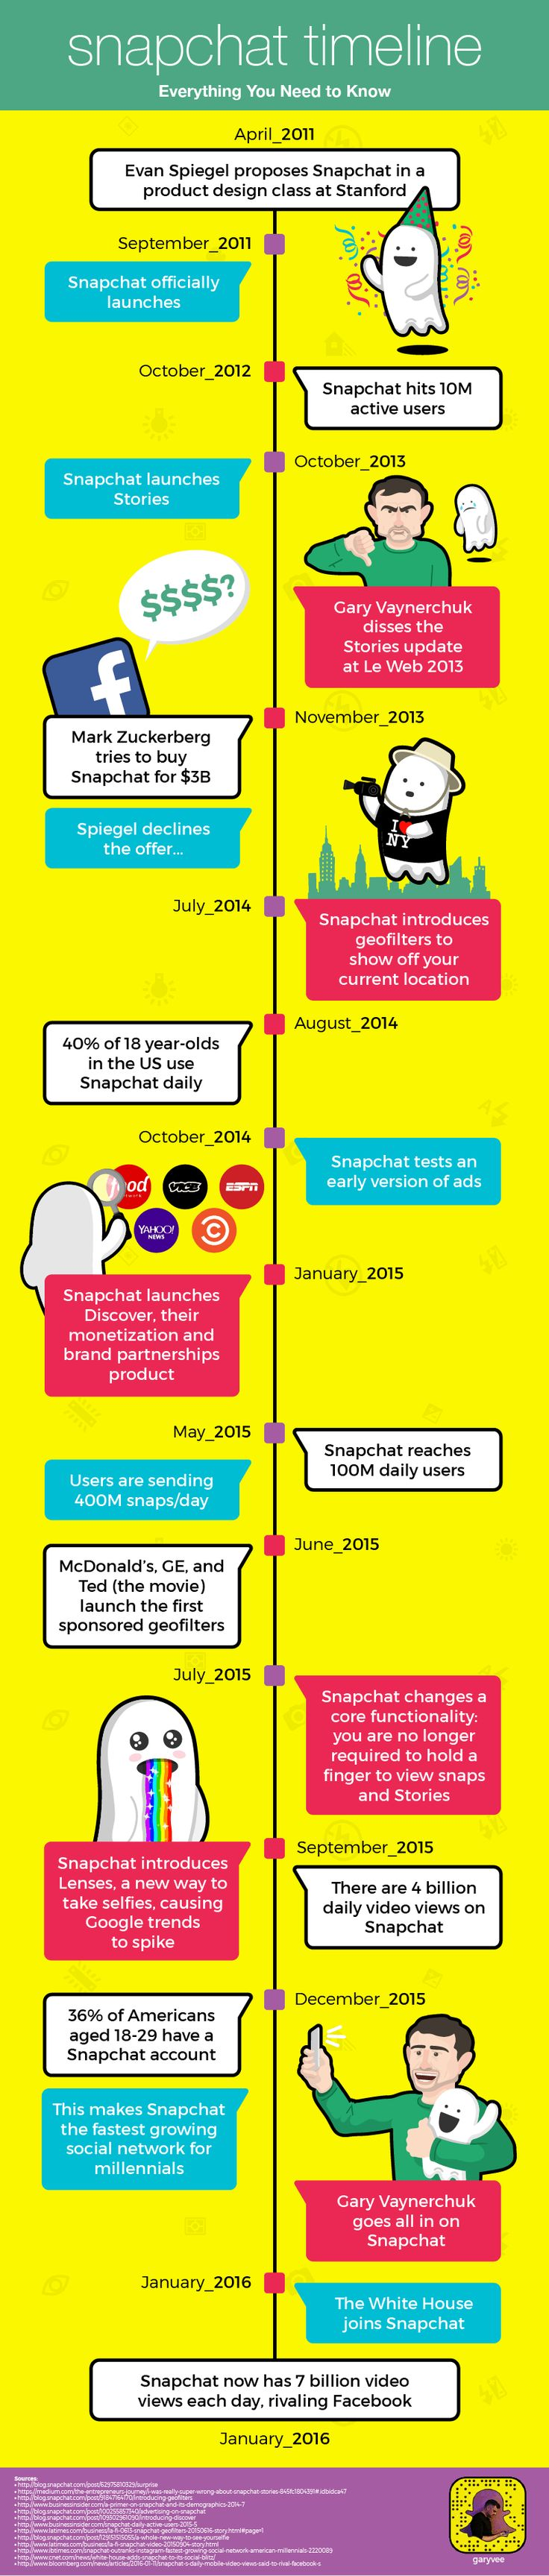 Why #snapchat and why now? The History of Snapchat A Timeline - This is THE SINGLE GREATEST SNAPCHAT ARTICLE I have ever read. Yes, it's better than my article in Inman News! #marketing #snapchatmarketing